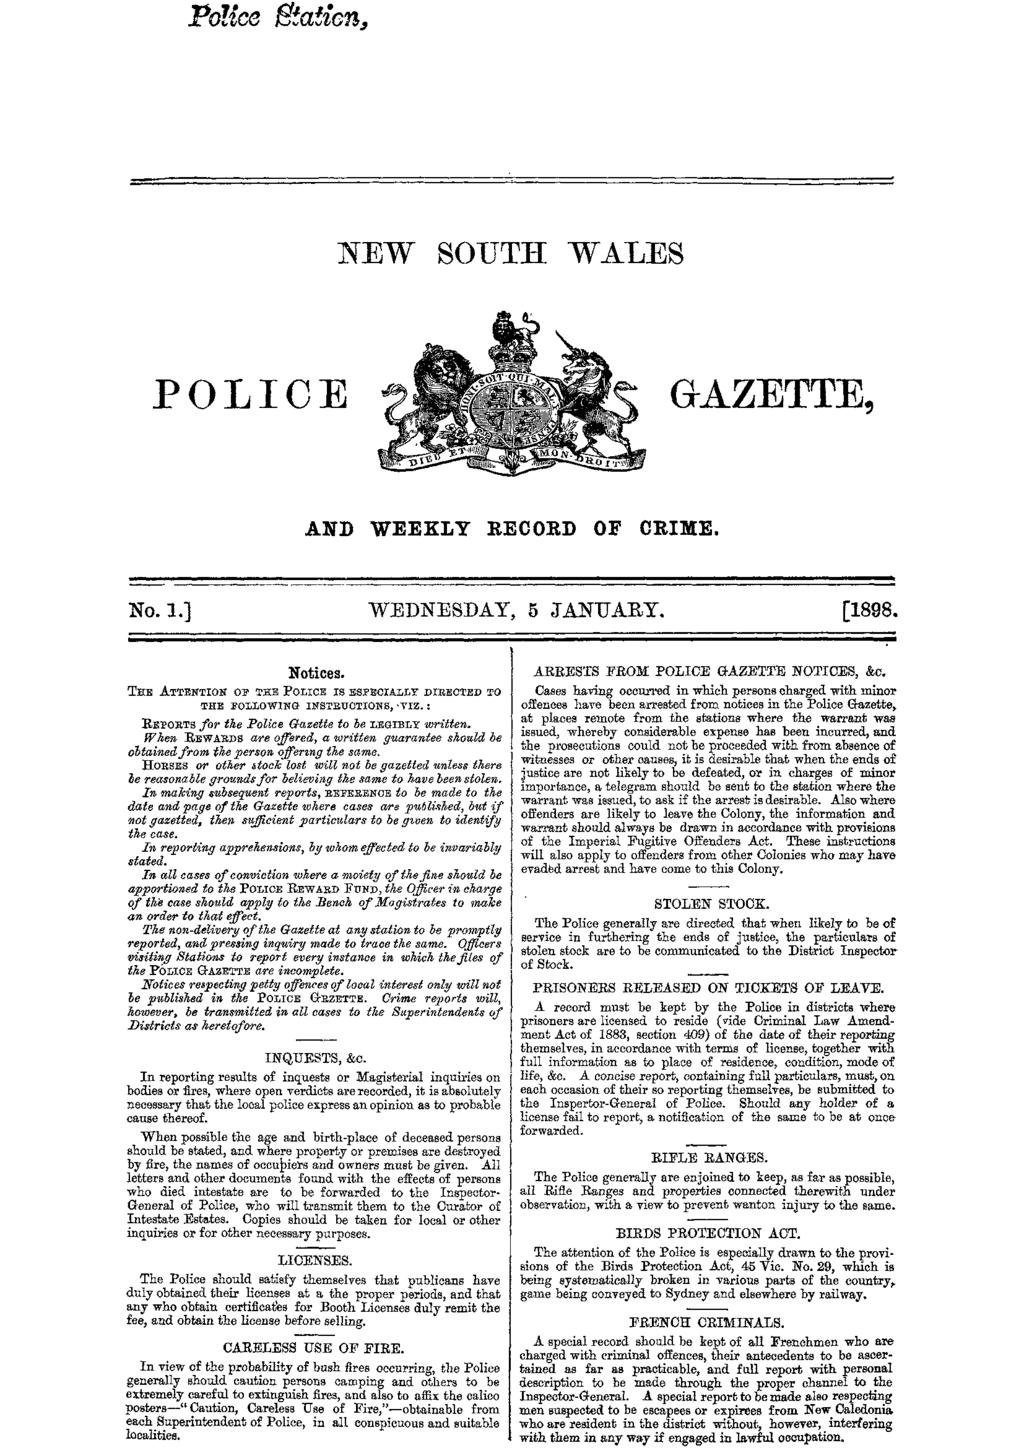 Pole aucn, NEW SOUTH WALES POLI C E GAZETTE, p.ni(/if/ _46MA N- irtor 17fj AND WEEKLY RECORD OF CRIME. No. 1.] WEDNESDAY, 5 JANUARY. [1898. Notices.